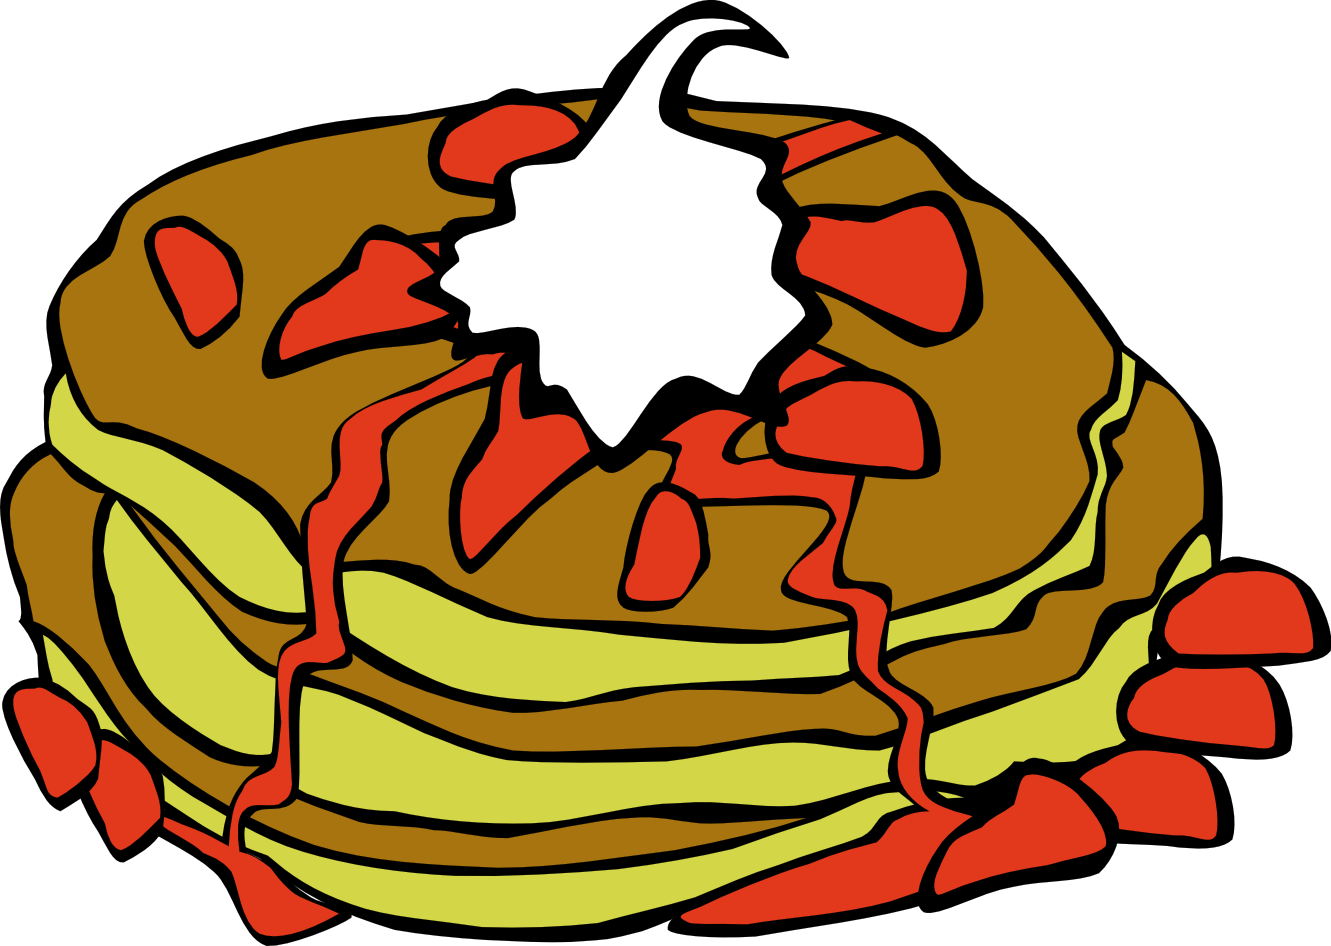 hight resolution of 1331x946 breakfast clipart 0 crepes for breakfast clip art free image